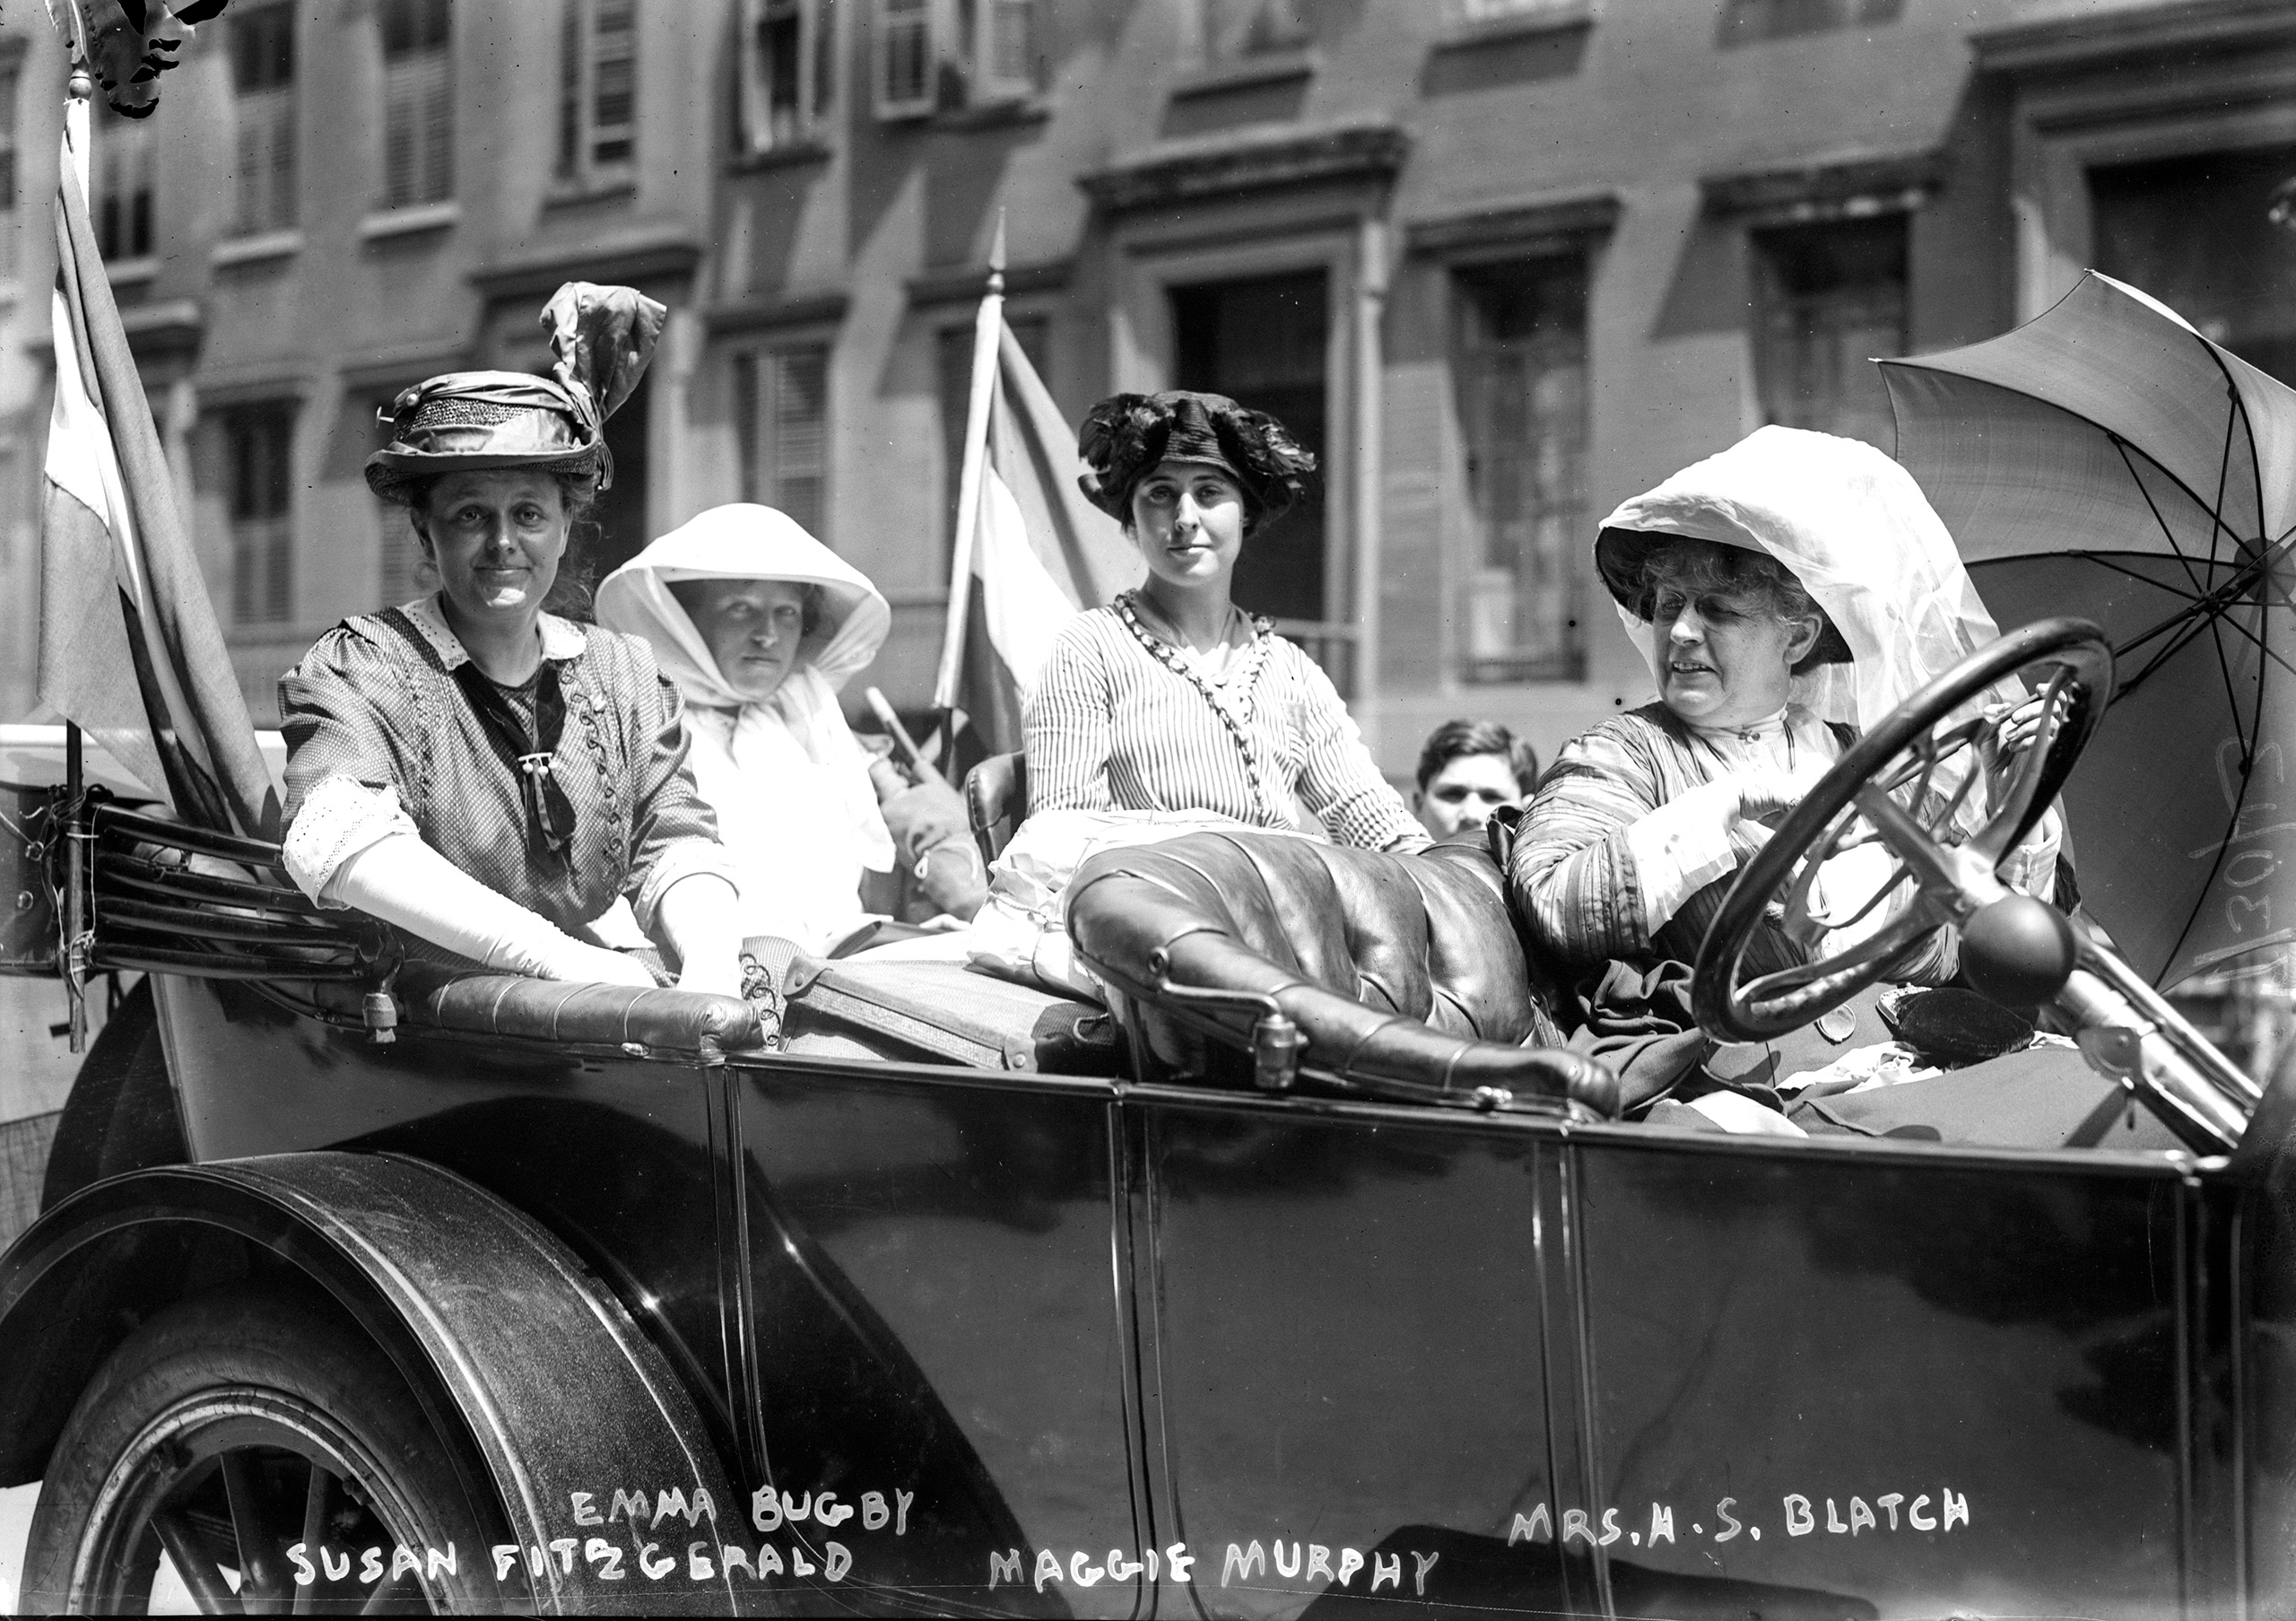 Suffragists Susan Walker Fitzgerald, Emma Bugbee, Maggie Murphy and Harriot Stanton Blatch at a women's suffrage parade in New York City, July 30, 1913.